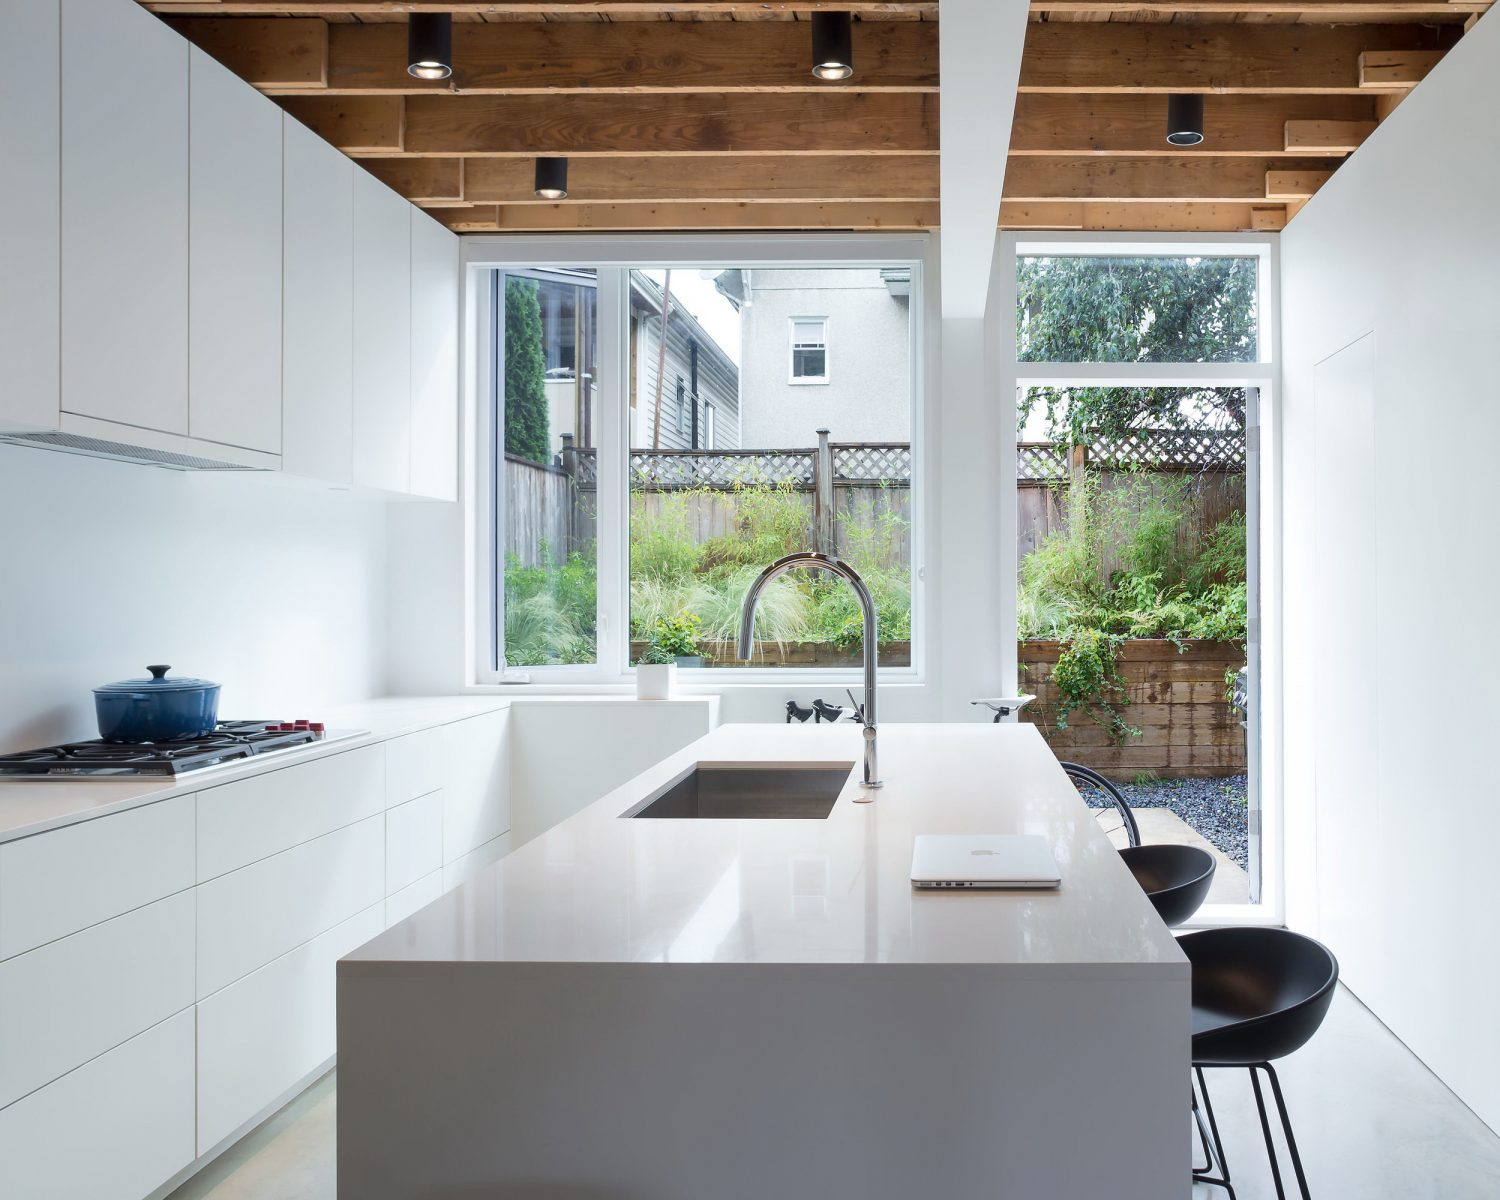 480 House by D'Arcy Jones Architecture